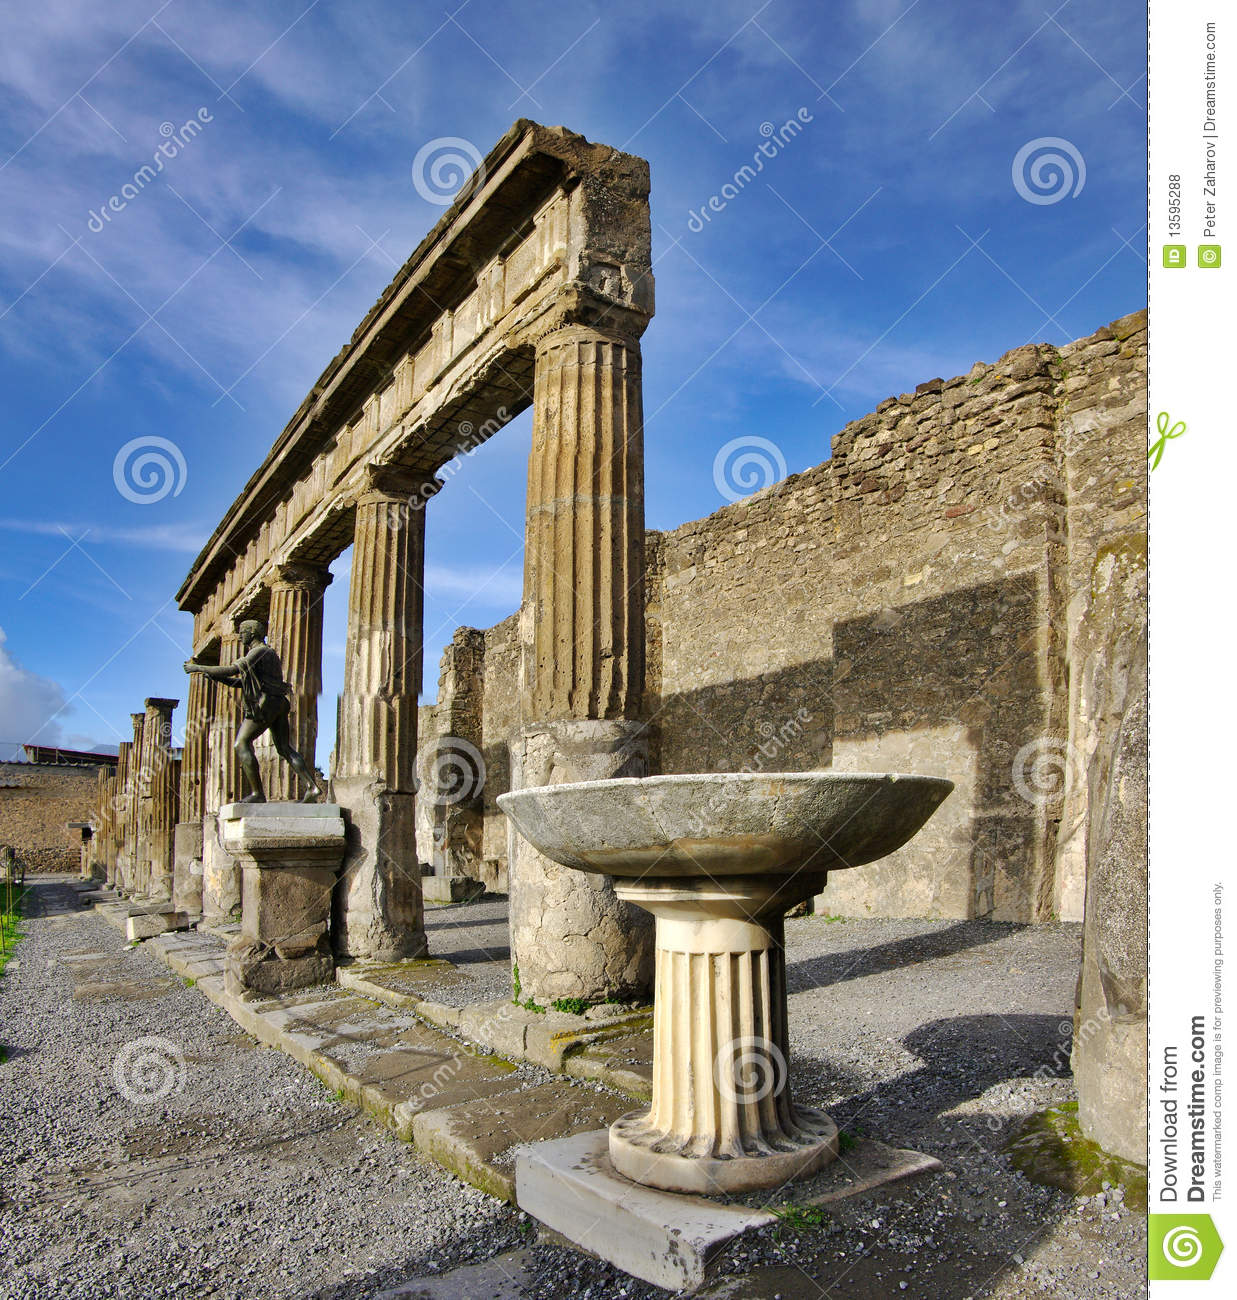 View of Pompeii ruins. Italy.